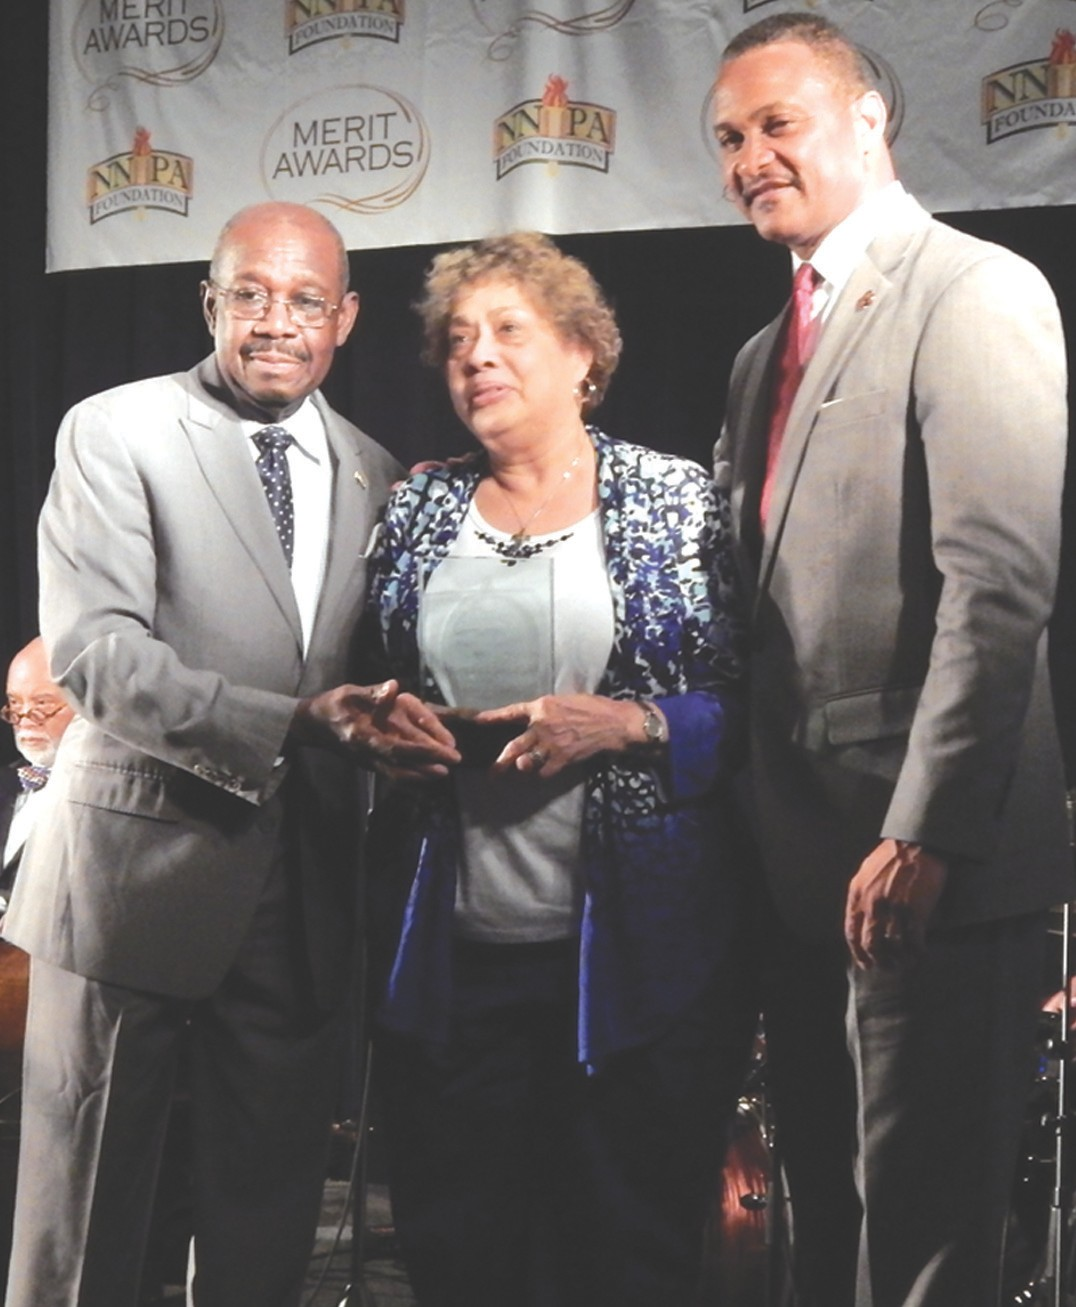 Mary Alice Thatch (center) Publisher, Wilmington Journal named Publisher of the Year